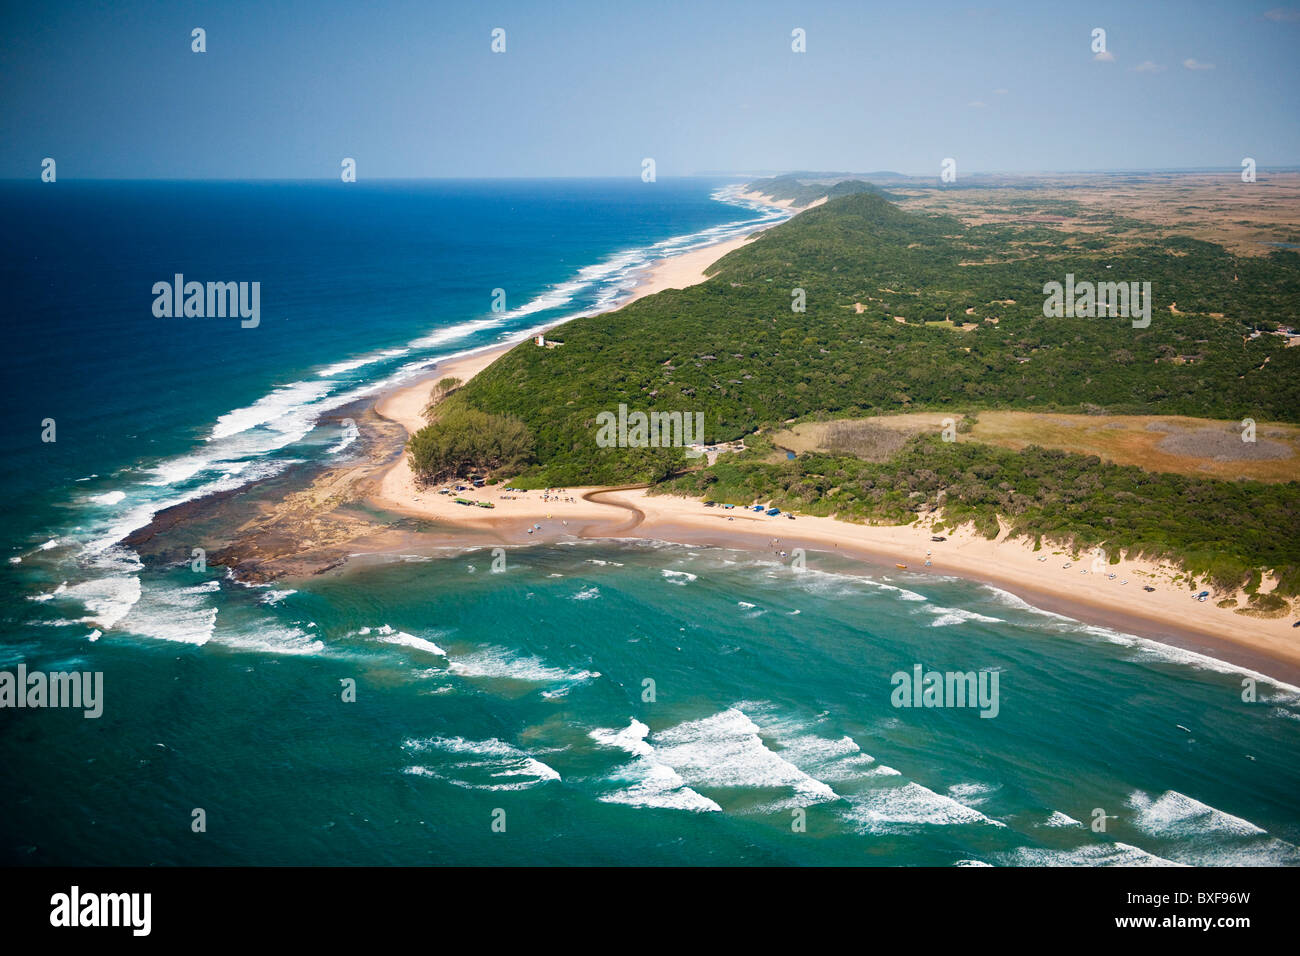 Aerial view of the iSimangaliso Wetland Park (previously Greater St Lucia Wetland Park) showing Sodwana Bay and - Stock Image